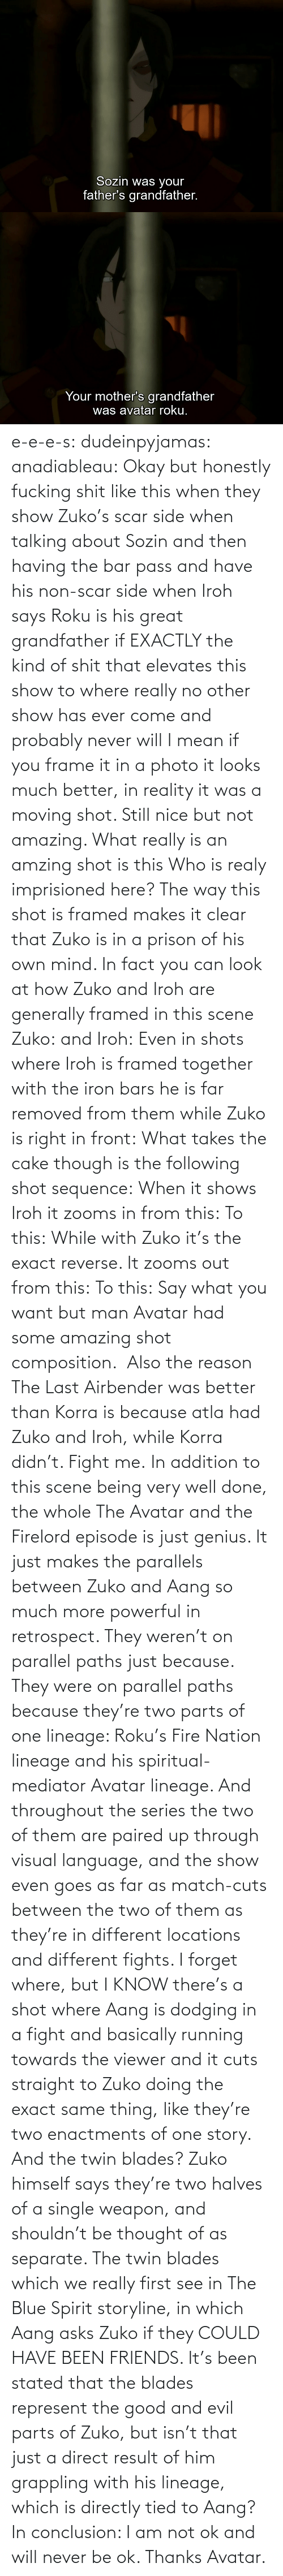 Last: e-e-e-s: dudeinpyjamas:   anadiableau: Okay but honestly fucking shit like this when they show Zuko's scar side when talking about Sozin and then having the bar pass and have his non-scar side when Iroh says Roku is his great grandfather if EXACTLY the kind of shit that elevates this show to where really no other show has ever come and probably never will I mean if you frame it in a photo it looks much better, in reality it was a moving shot. Still nice but not amazing. What really is an amzing shot is this Who is realy imprisioned here? The way this shot is framed makes it clear that Zuko is in a prison of his own mind. In fact you can look at how Zuko and Iroh are generally framed in this scene Zuko: and Iroh: Even in shots where Iroh is framed together with the iron bars he is far removed from them while Zuko is right in front:  What takes the cake though is the following shot sequence: When it shows Iroh it zooms in from this: To this: While with Zuko it's the exact reverse. It zooms out from this: To this: Say what you want but man Avatar had some amazing shot composition.   Also the reason The Last Airbender was better than Korra is because atla had Zuko and Iroh, while Korra didn't. Fight me.    In addition to this scene being very well done, the whole The Avatar and the Firelord episode is just genius.  It just makes the parallels between Zuko and Aang so much more powerful in retrospect.  They weren't on parallel paths just because.  They were on parallel paths because they're two parts of one lineage: Roku's Fire Nation lineage and his spiritual-mediator Avatar lineage.  And throughout the series the two of them are paired up through visual language, and the show even goes as far as match-cuts between the two of them as they're in different locations and different fights.  I forget where, but I KNOW there's a shot where Aang is dodging in a fight and basically running towards the viewer and it cuts straight to Zuko doing the exact same thing, like they're two enactments of one story.   And the twin blades?  Zuko himself says they're two halves of a single weapon, and shouldn't be thought of as separate.  The twin blades which we really first see in The Blue Spirit storyline, in which Aang asks Zuko if they COULD HAVE BEEN FRIENDS.  It's been stated that the blades represent the good and evil parts of Zuko, but isn't that just a direct result of him grappling with his lineage, which is directly tied to Aang? In conclusion: I am not ok and will never be ok.  Thanks Avatar.